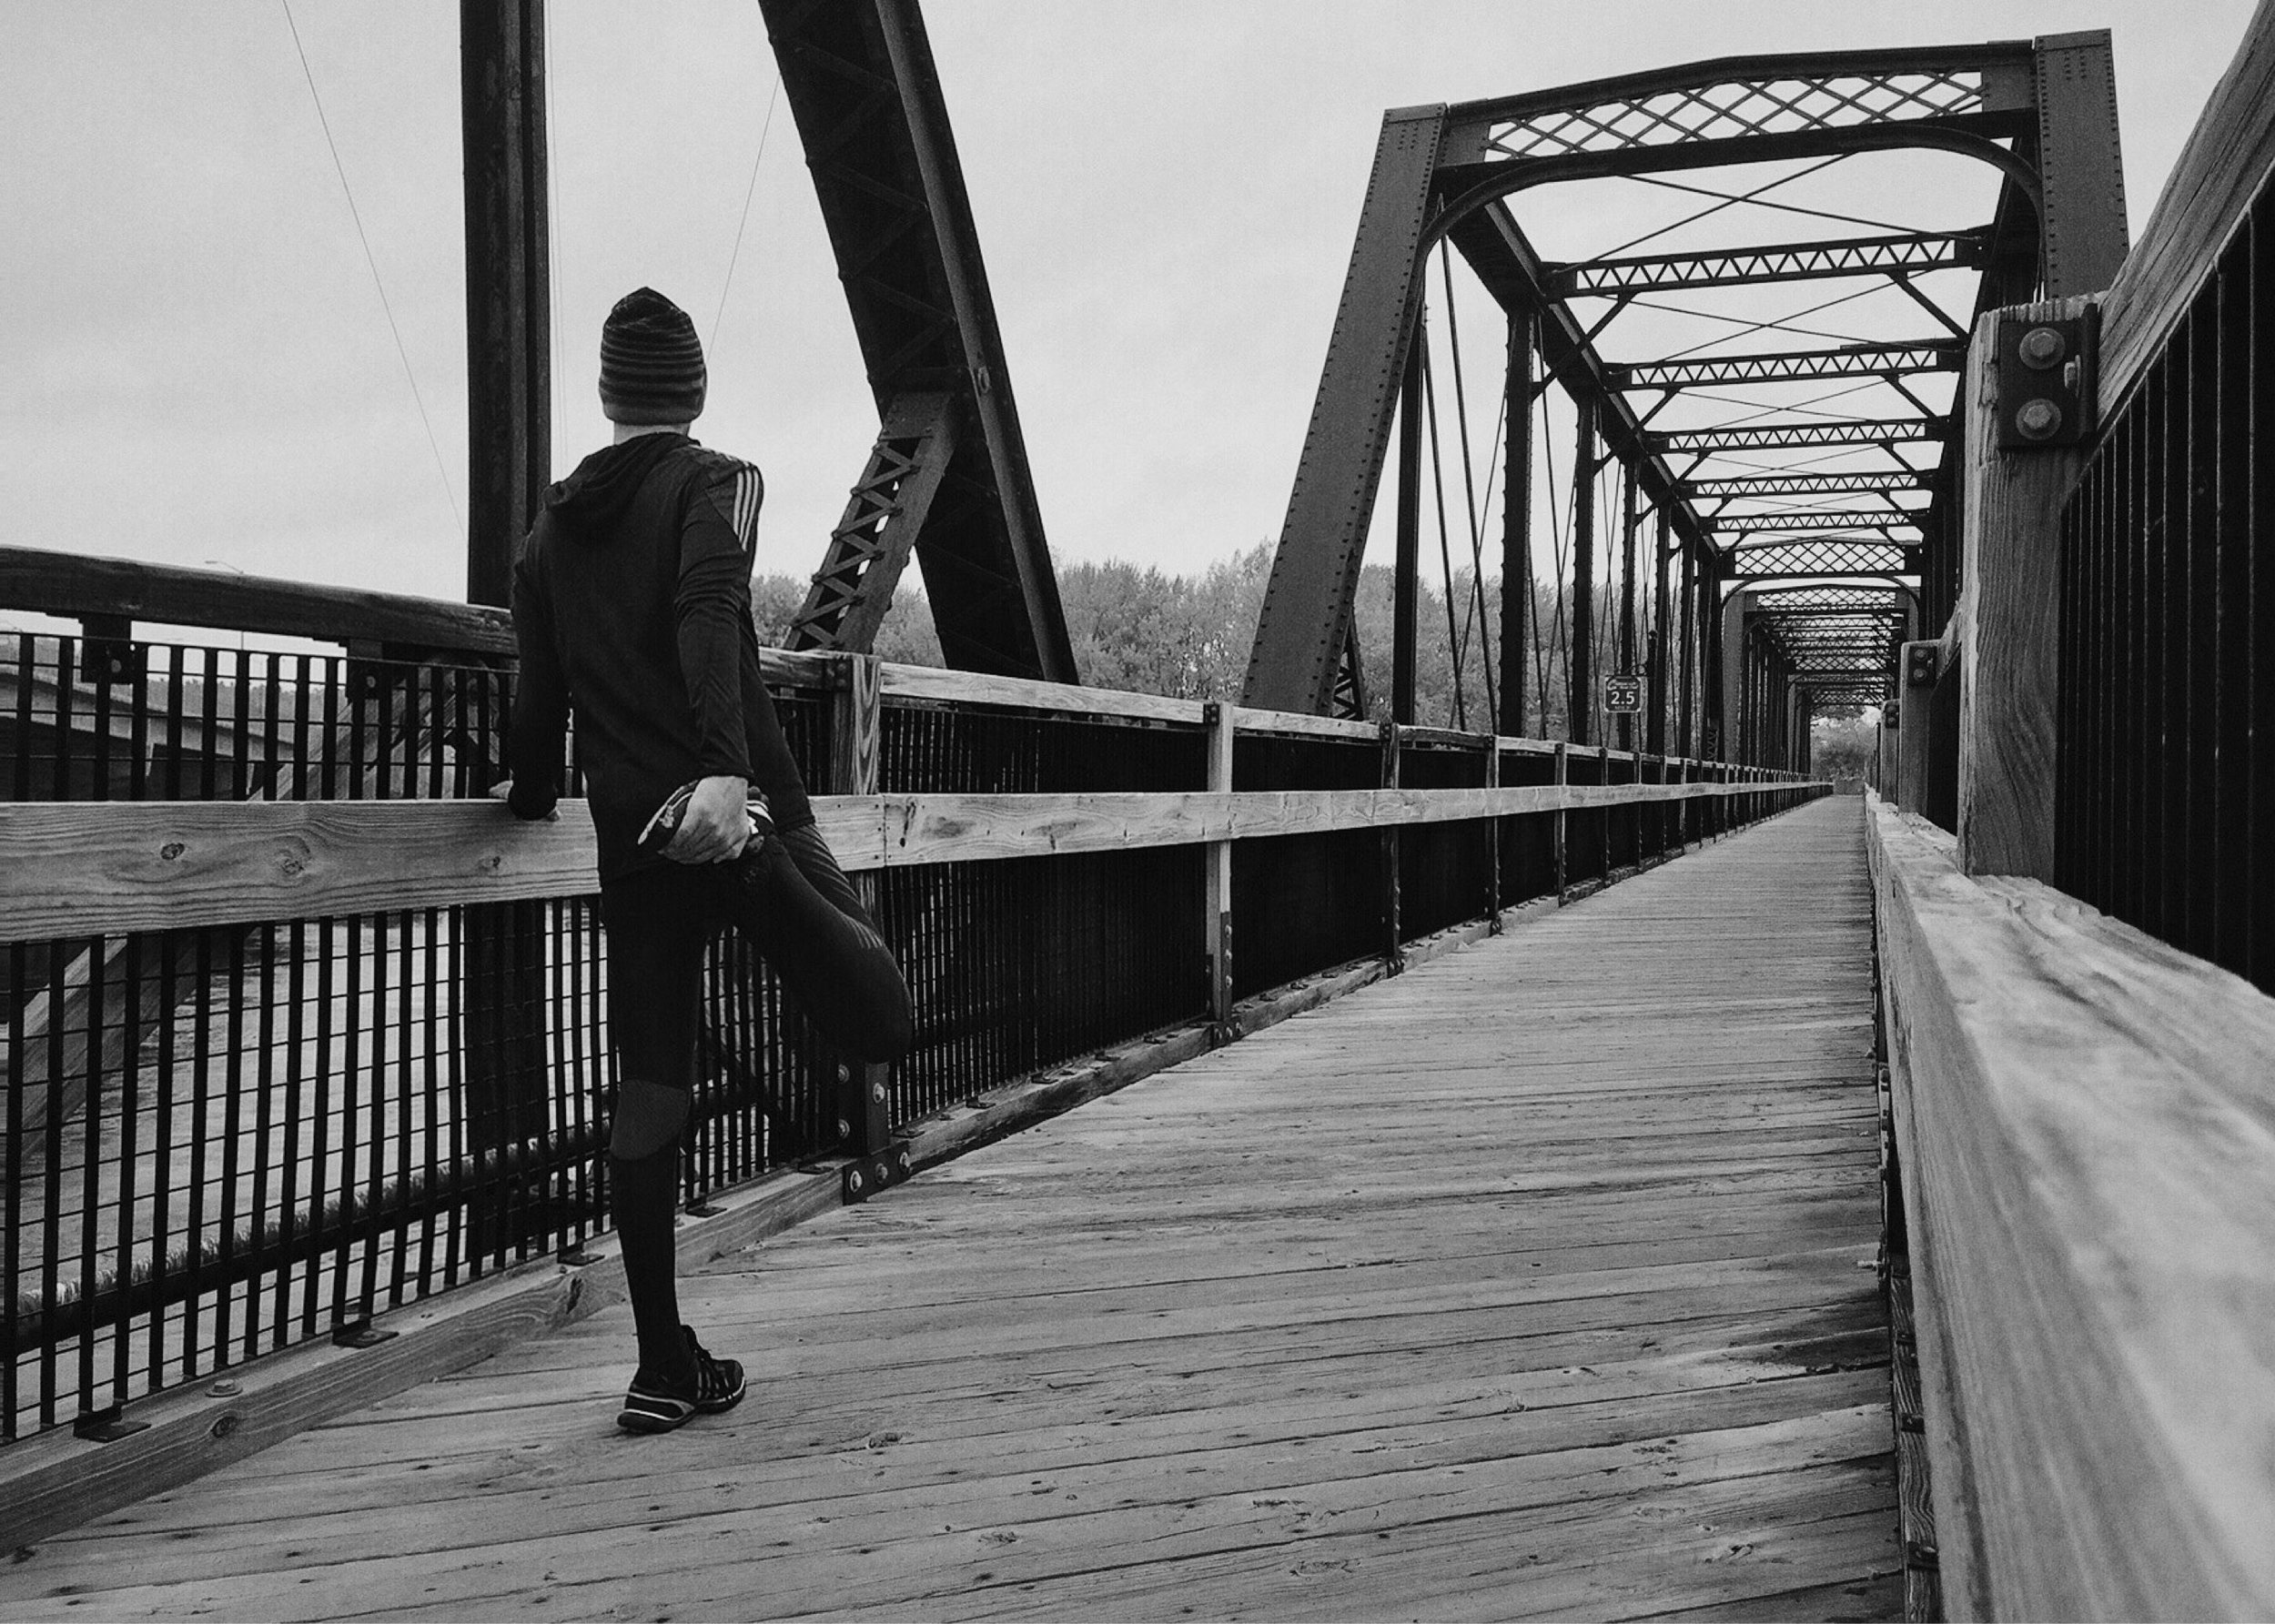 BW_Urban Runner_bridge pexels-photo-221210.jpg